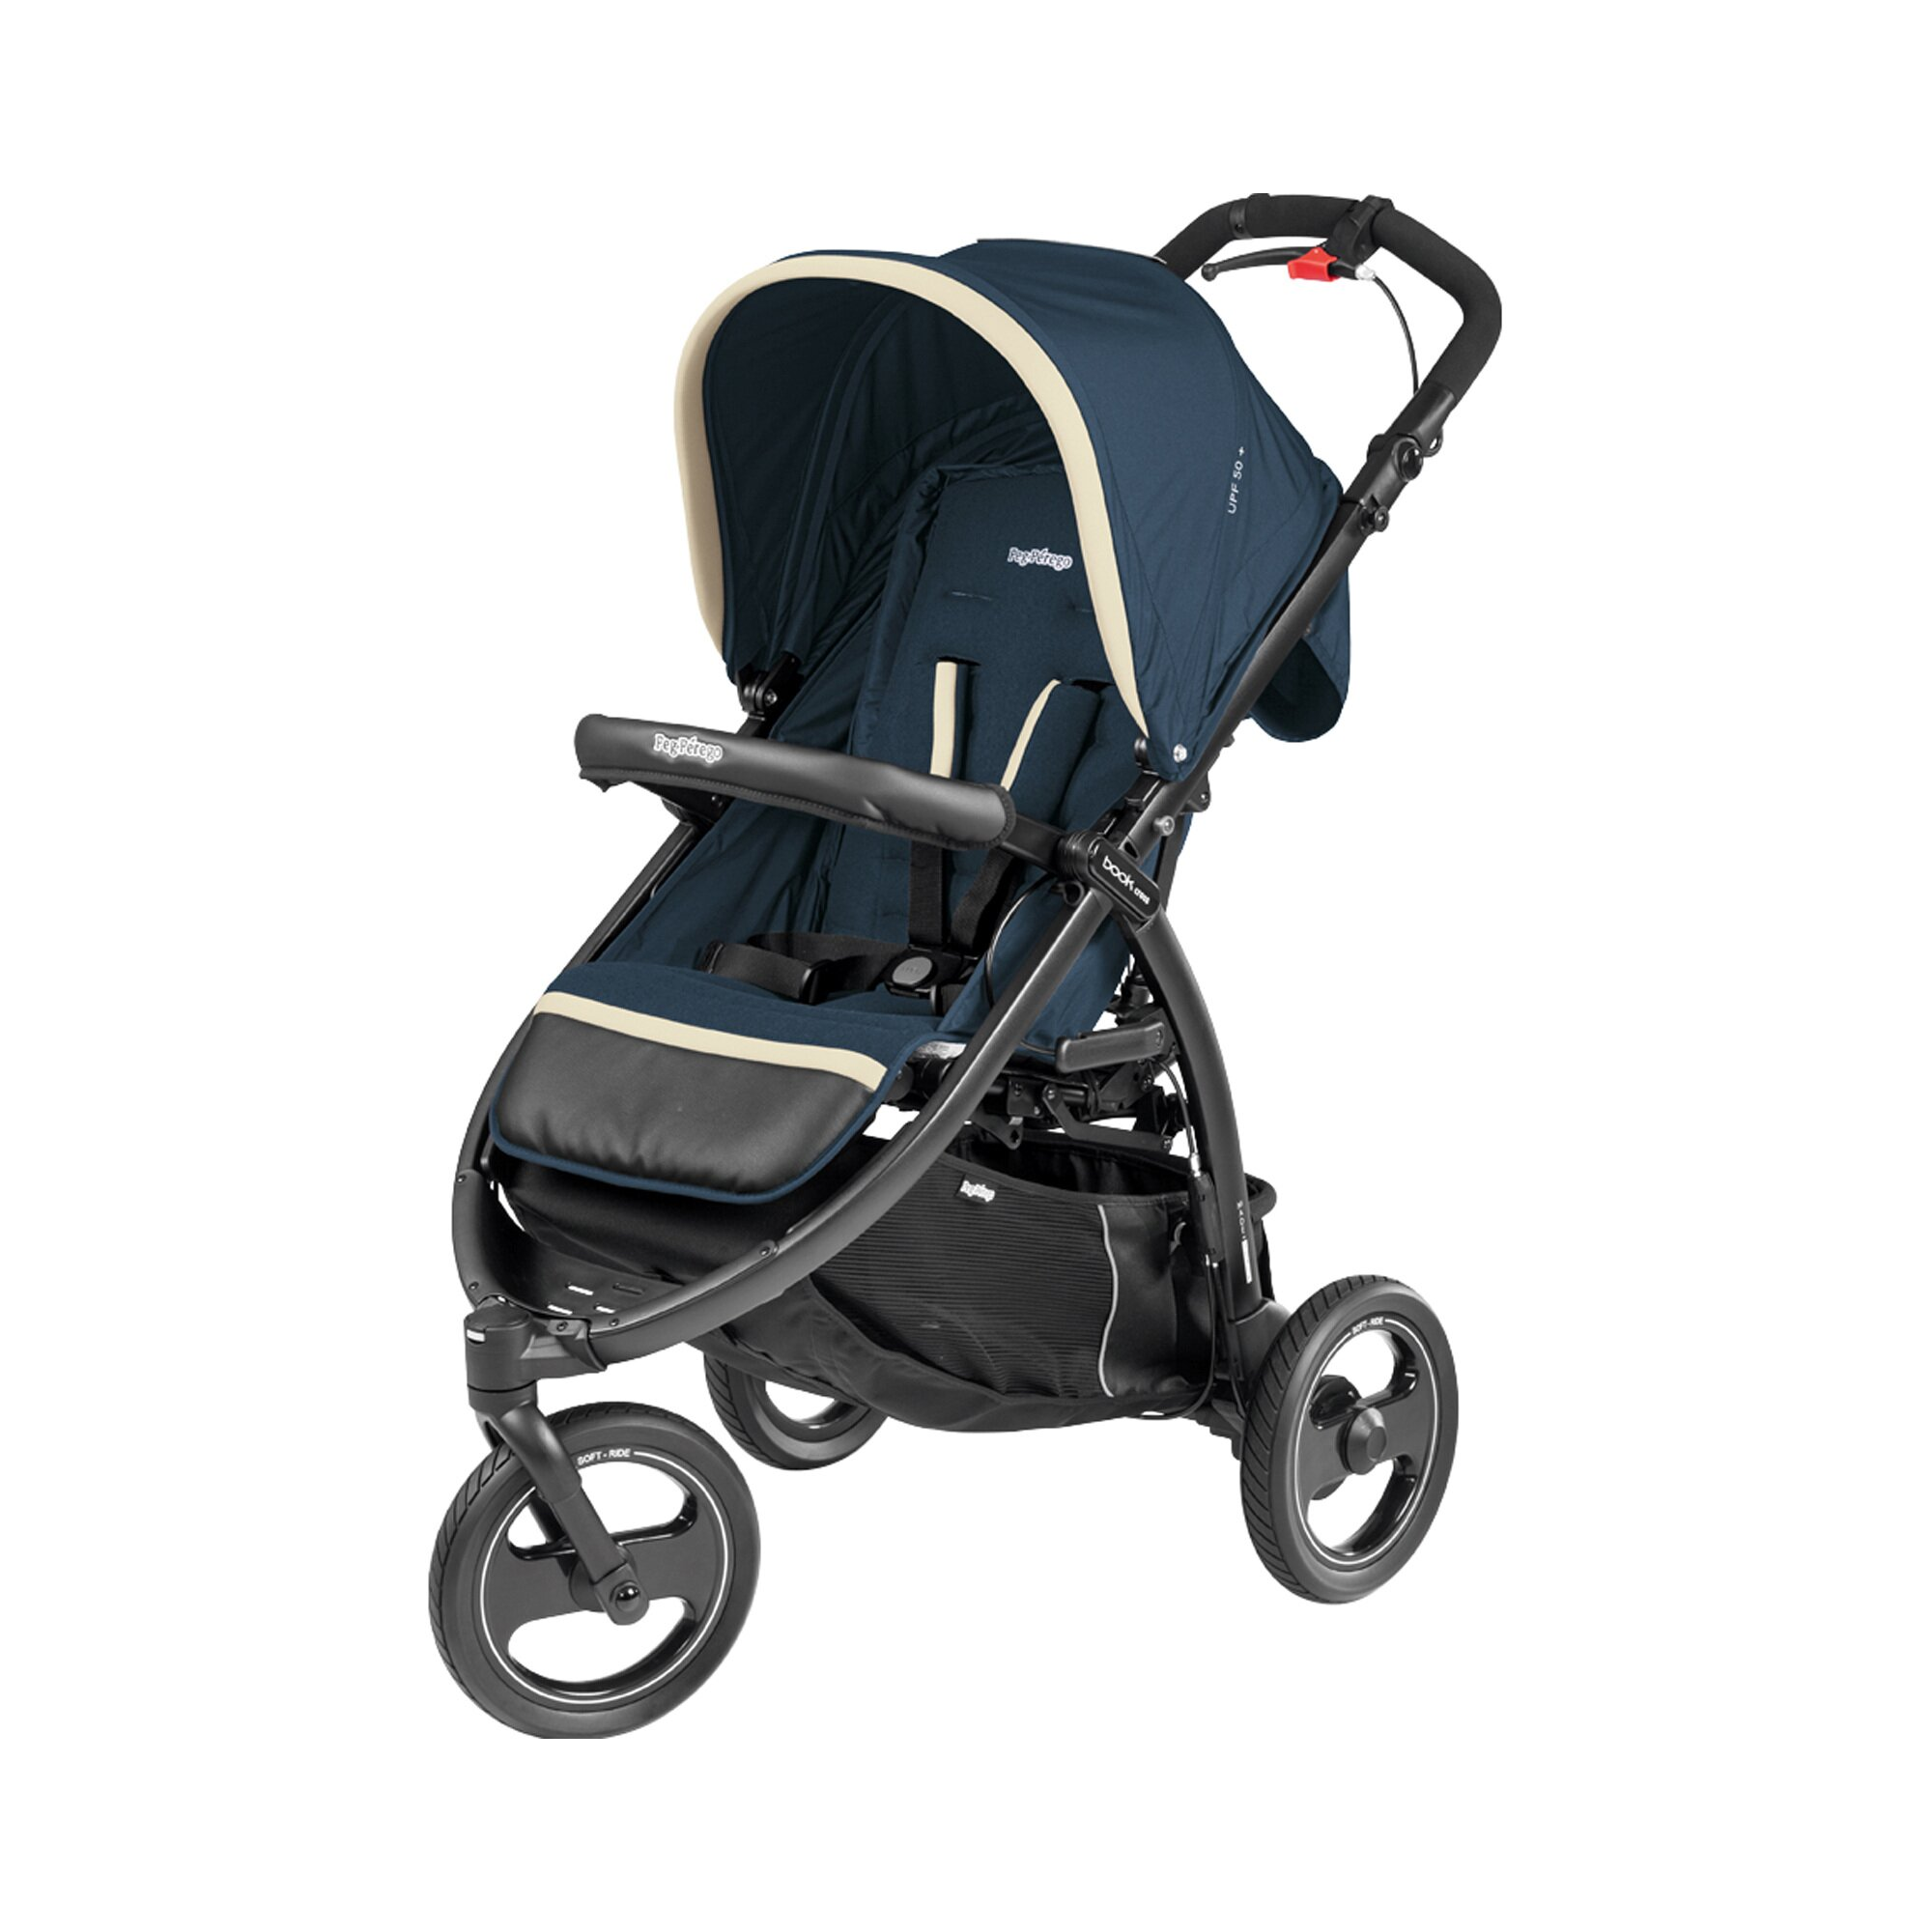 peg-perego-book-cross-kinderwagen-sportwagen-design-2018-blau